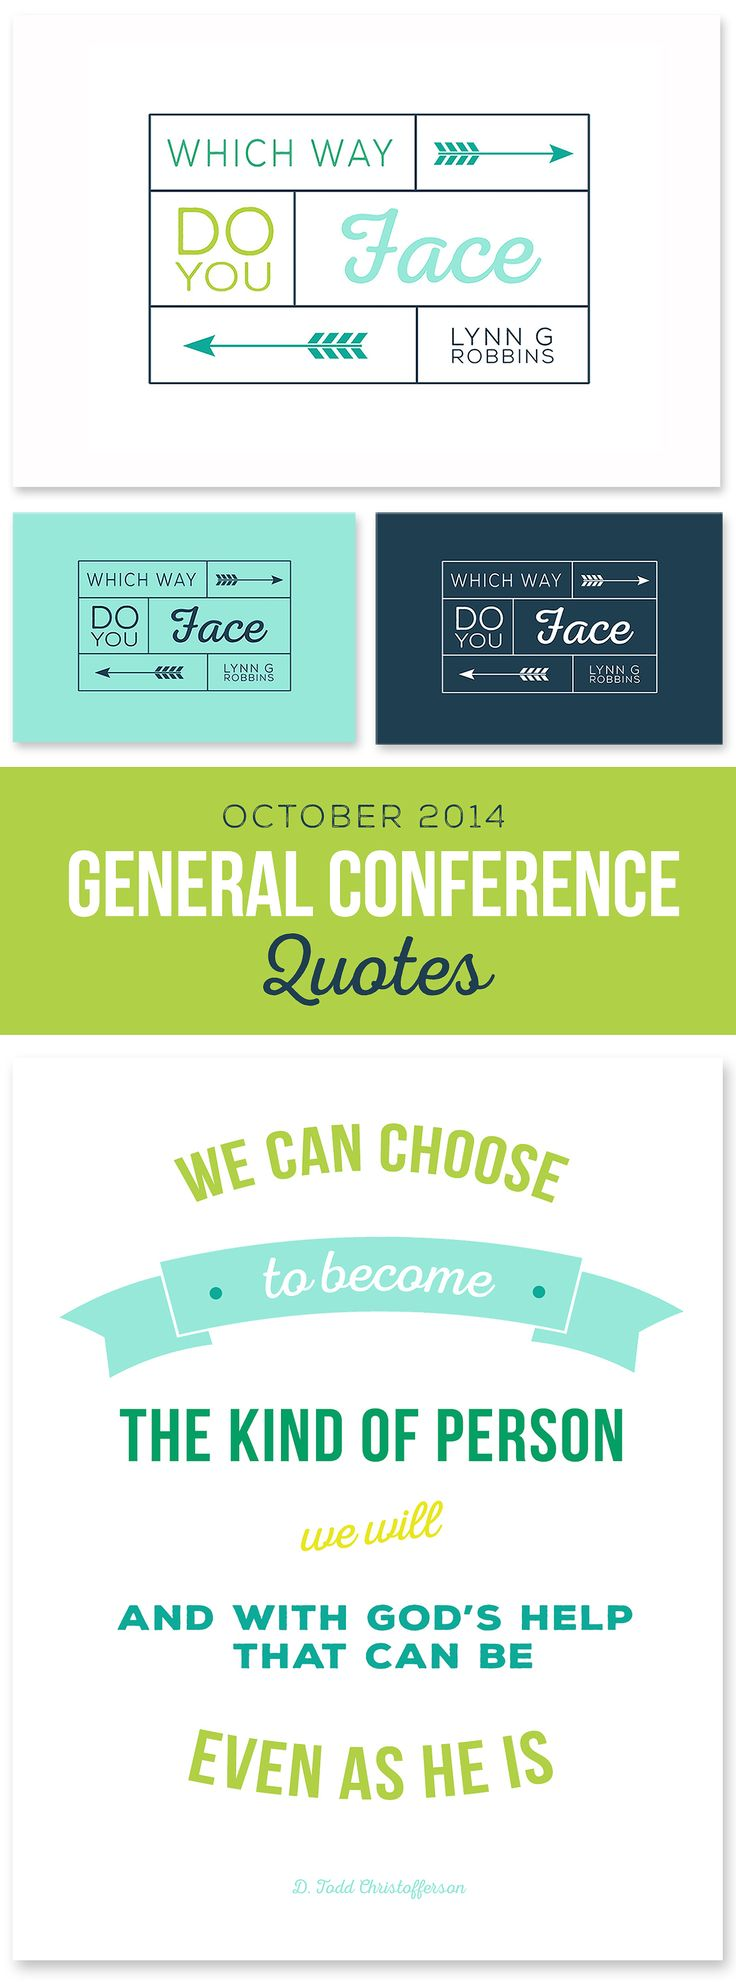 October 2014 General Conference Quotes